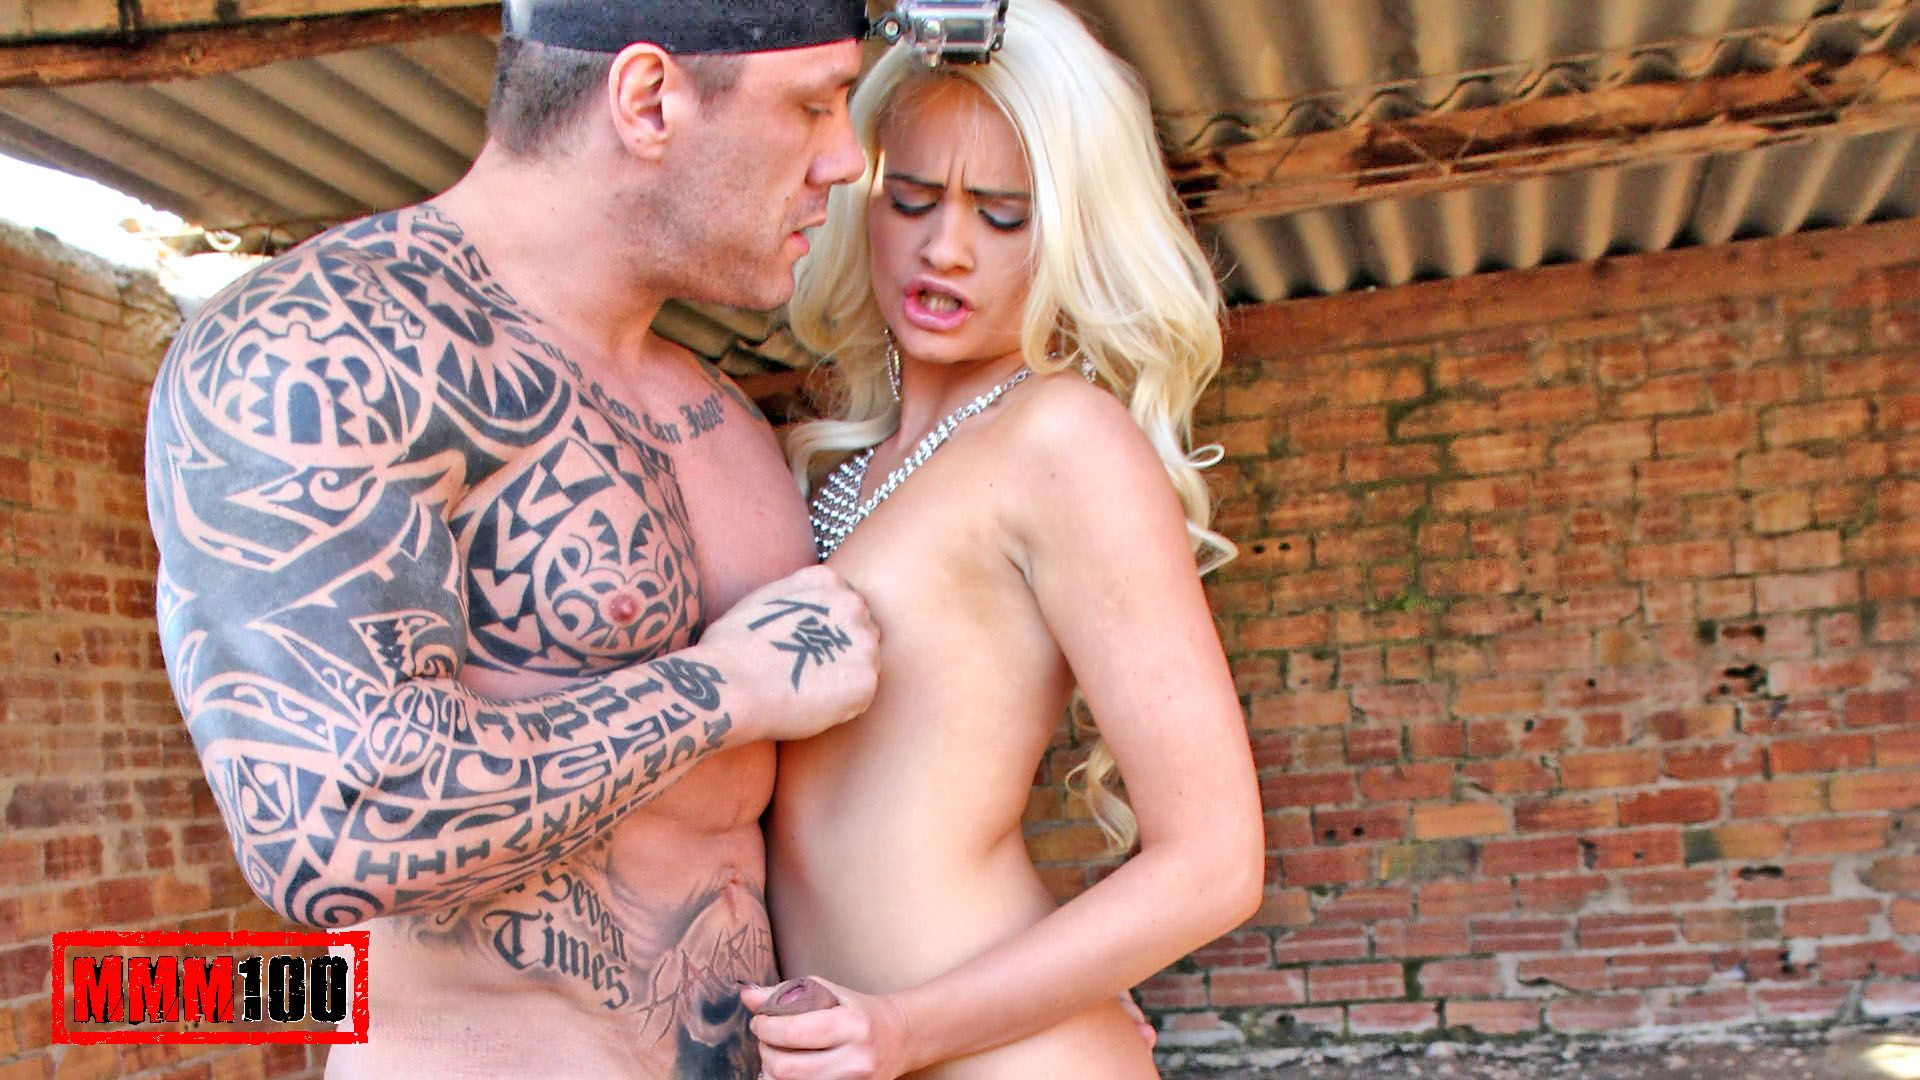 Cindy Sun & Rob Diesel in The Vicking Fucks The Blond Finn - MMM100